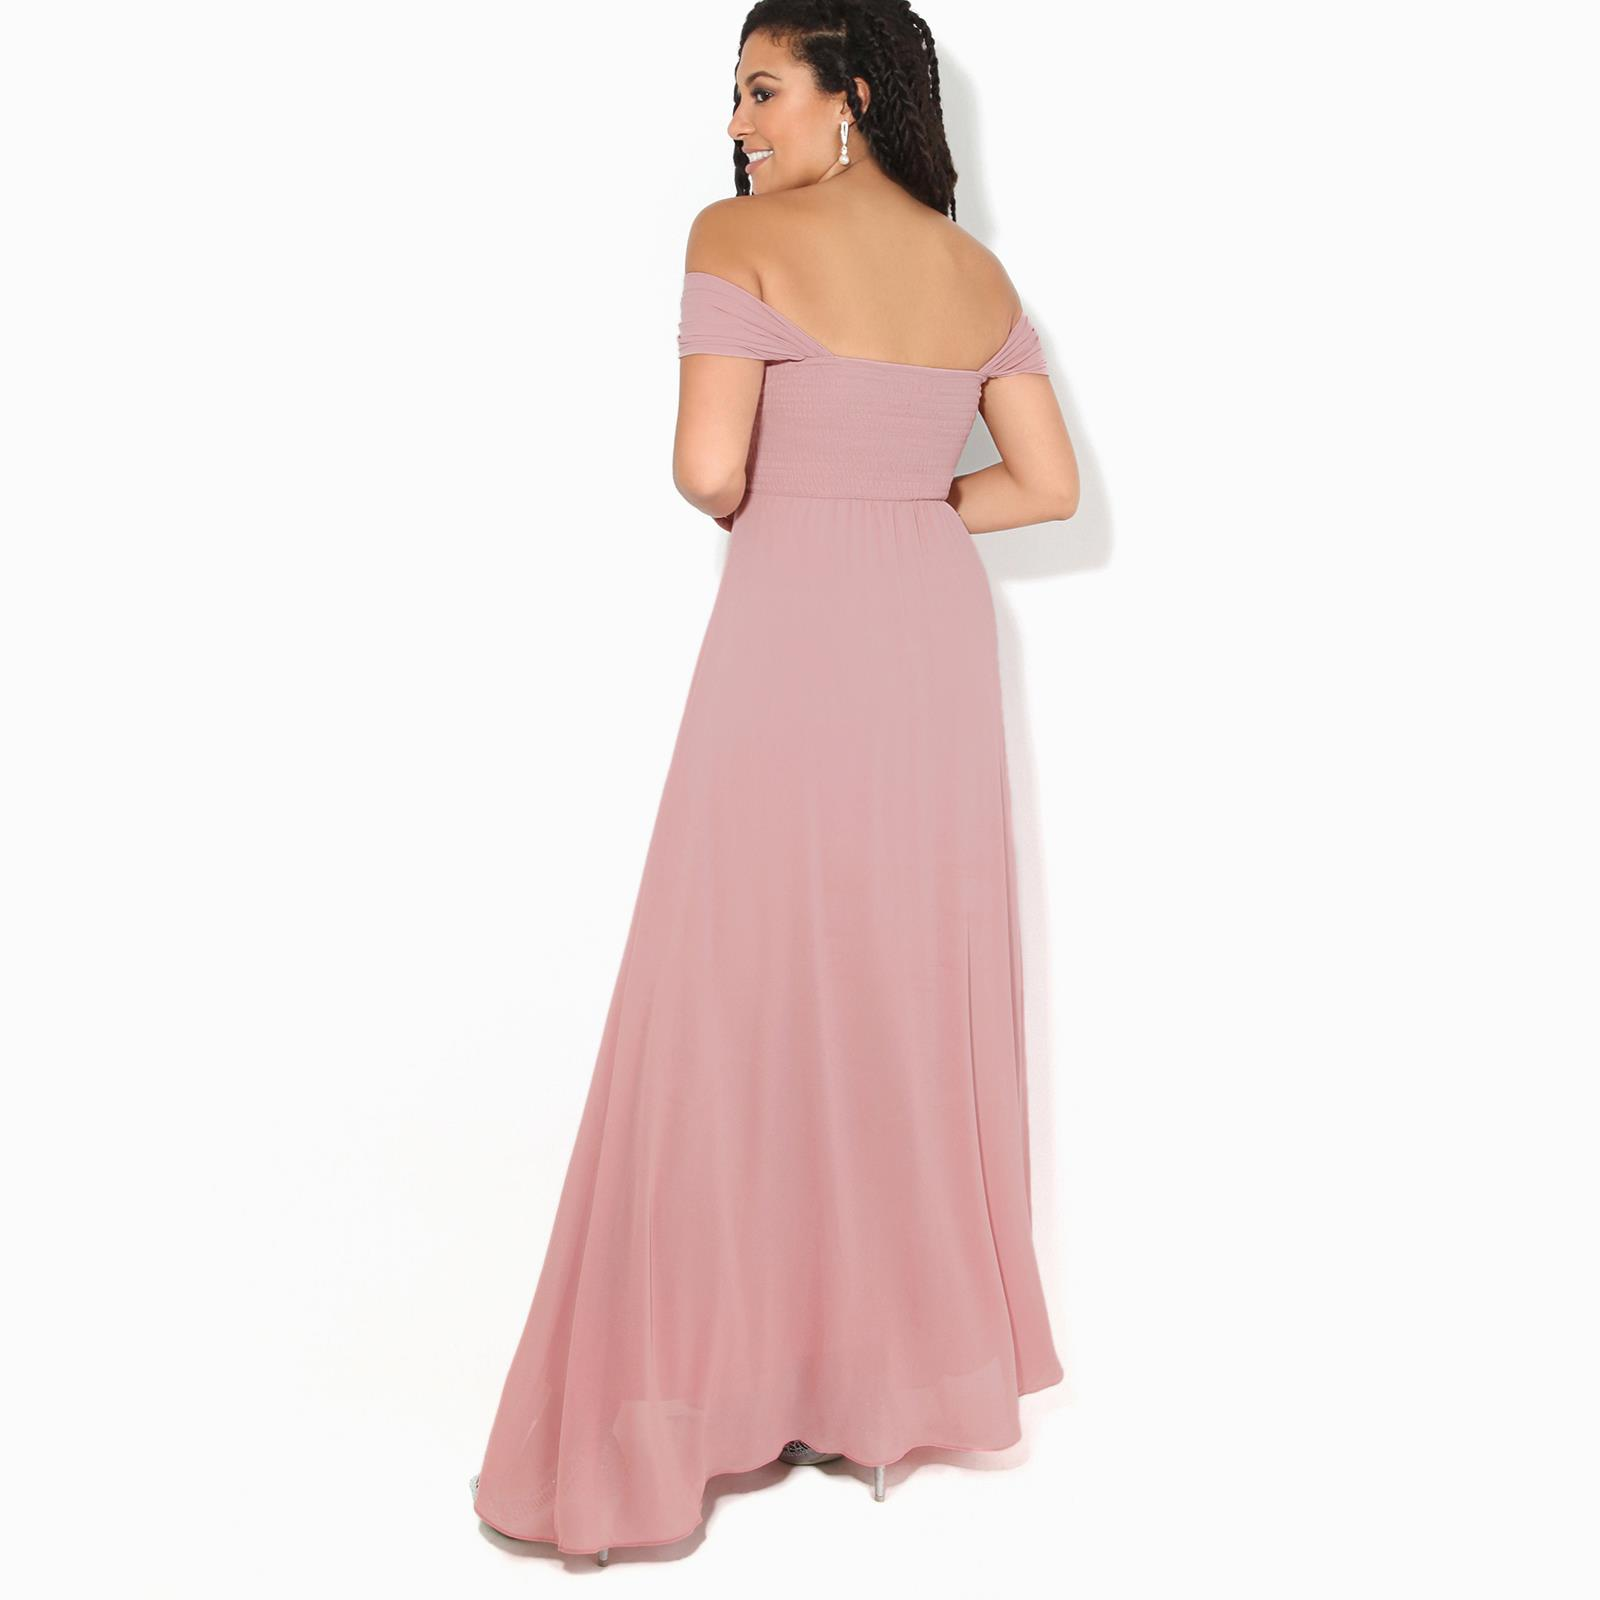 Womens-Formal-Evening-Wedding-Maxi-Prom-Dress-Long-On-Off-Shoulder-Ball-Gown thumbnail 24